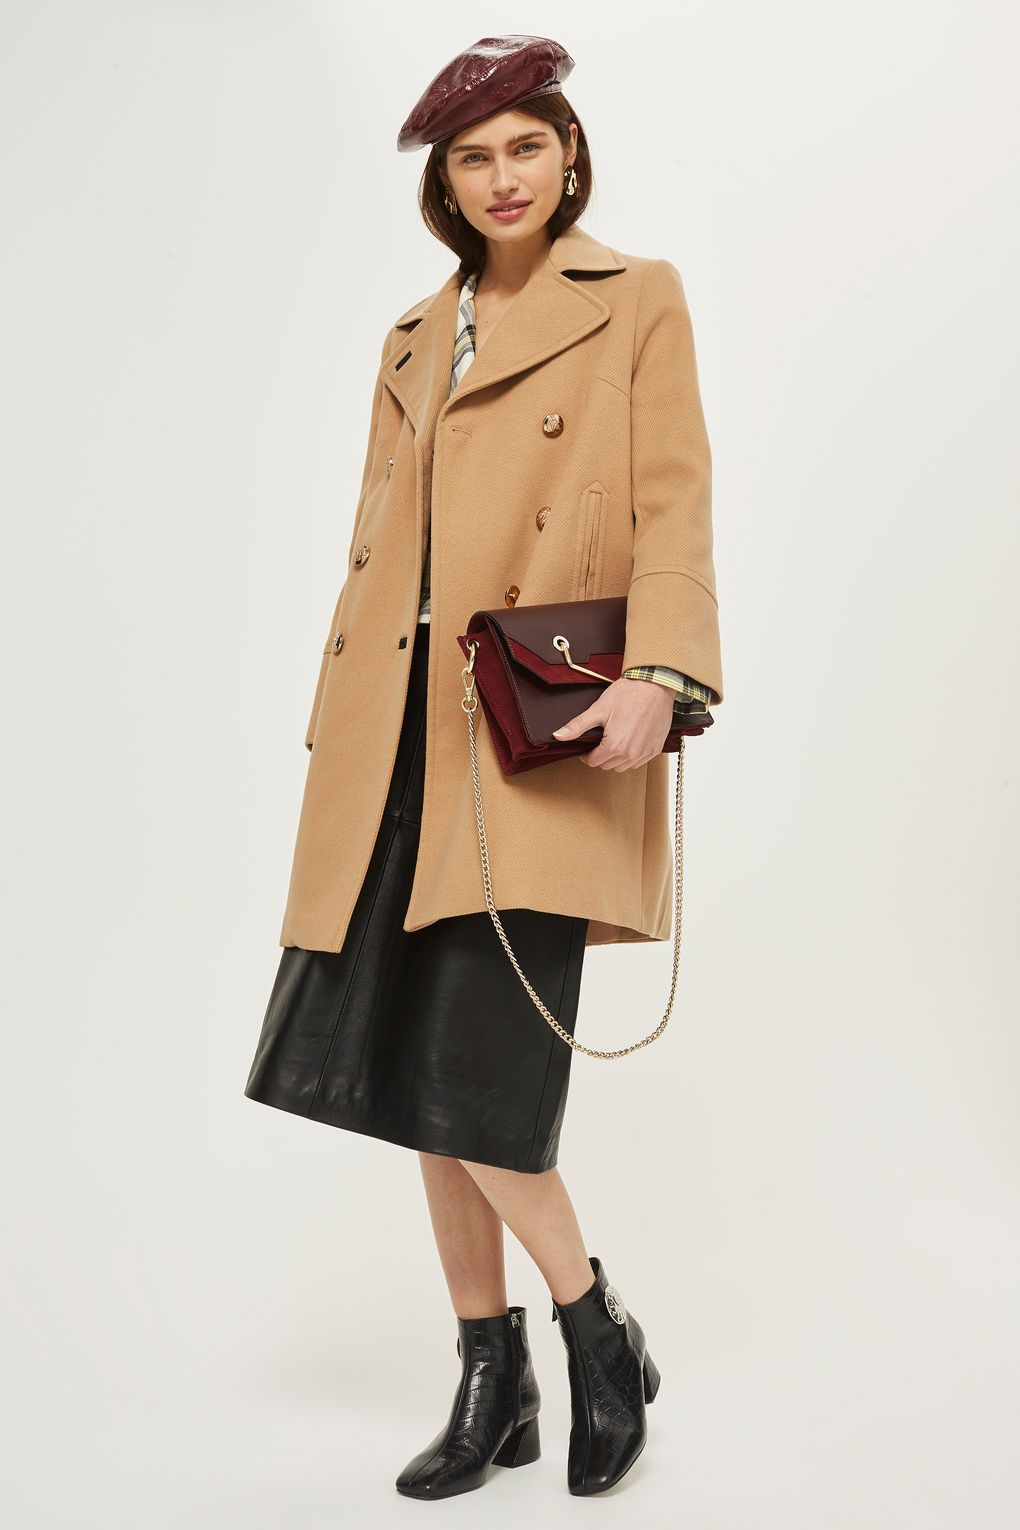 black-aline-skirt-beret-hat-burgundy-bag-black-shoe-booties-tan-jacket-coat-fall-winter-lunch.jpg